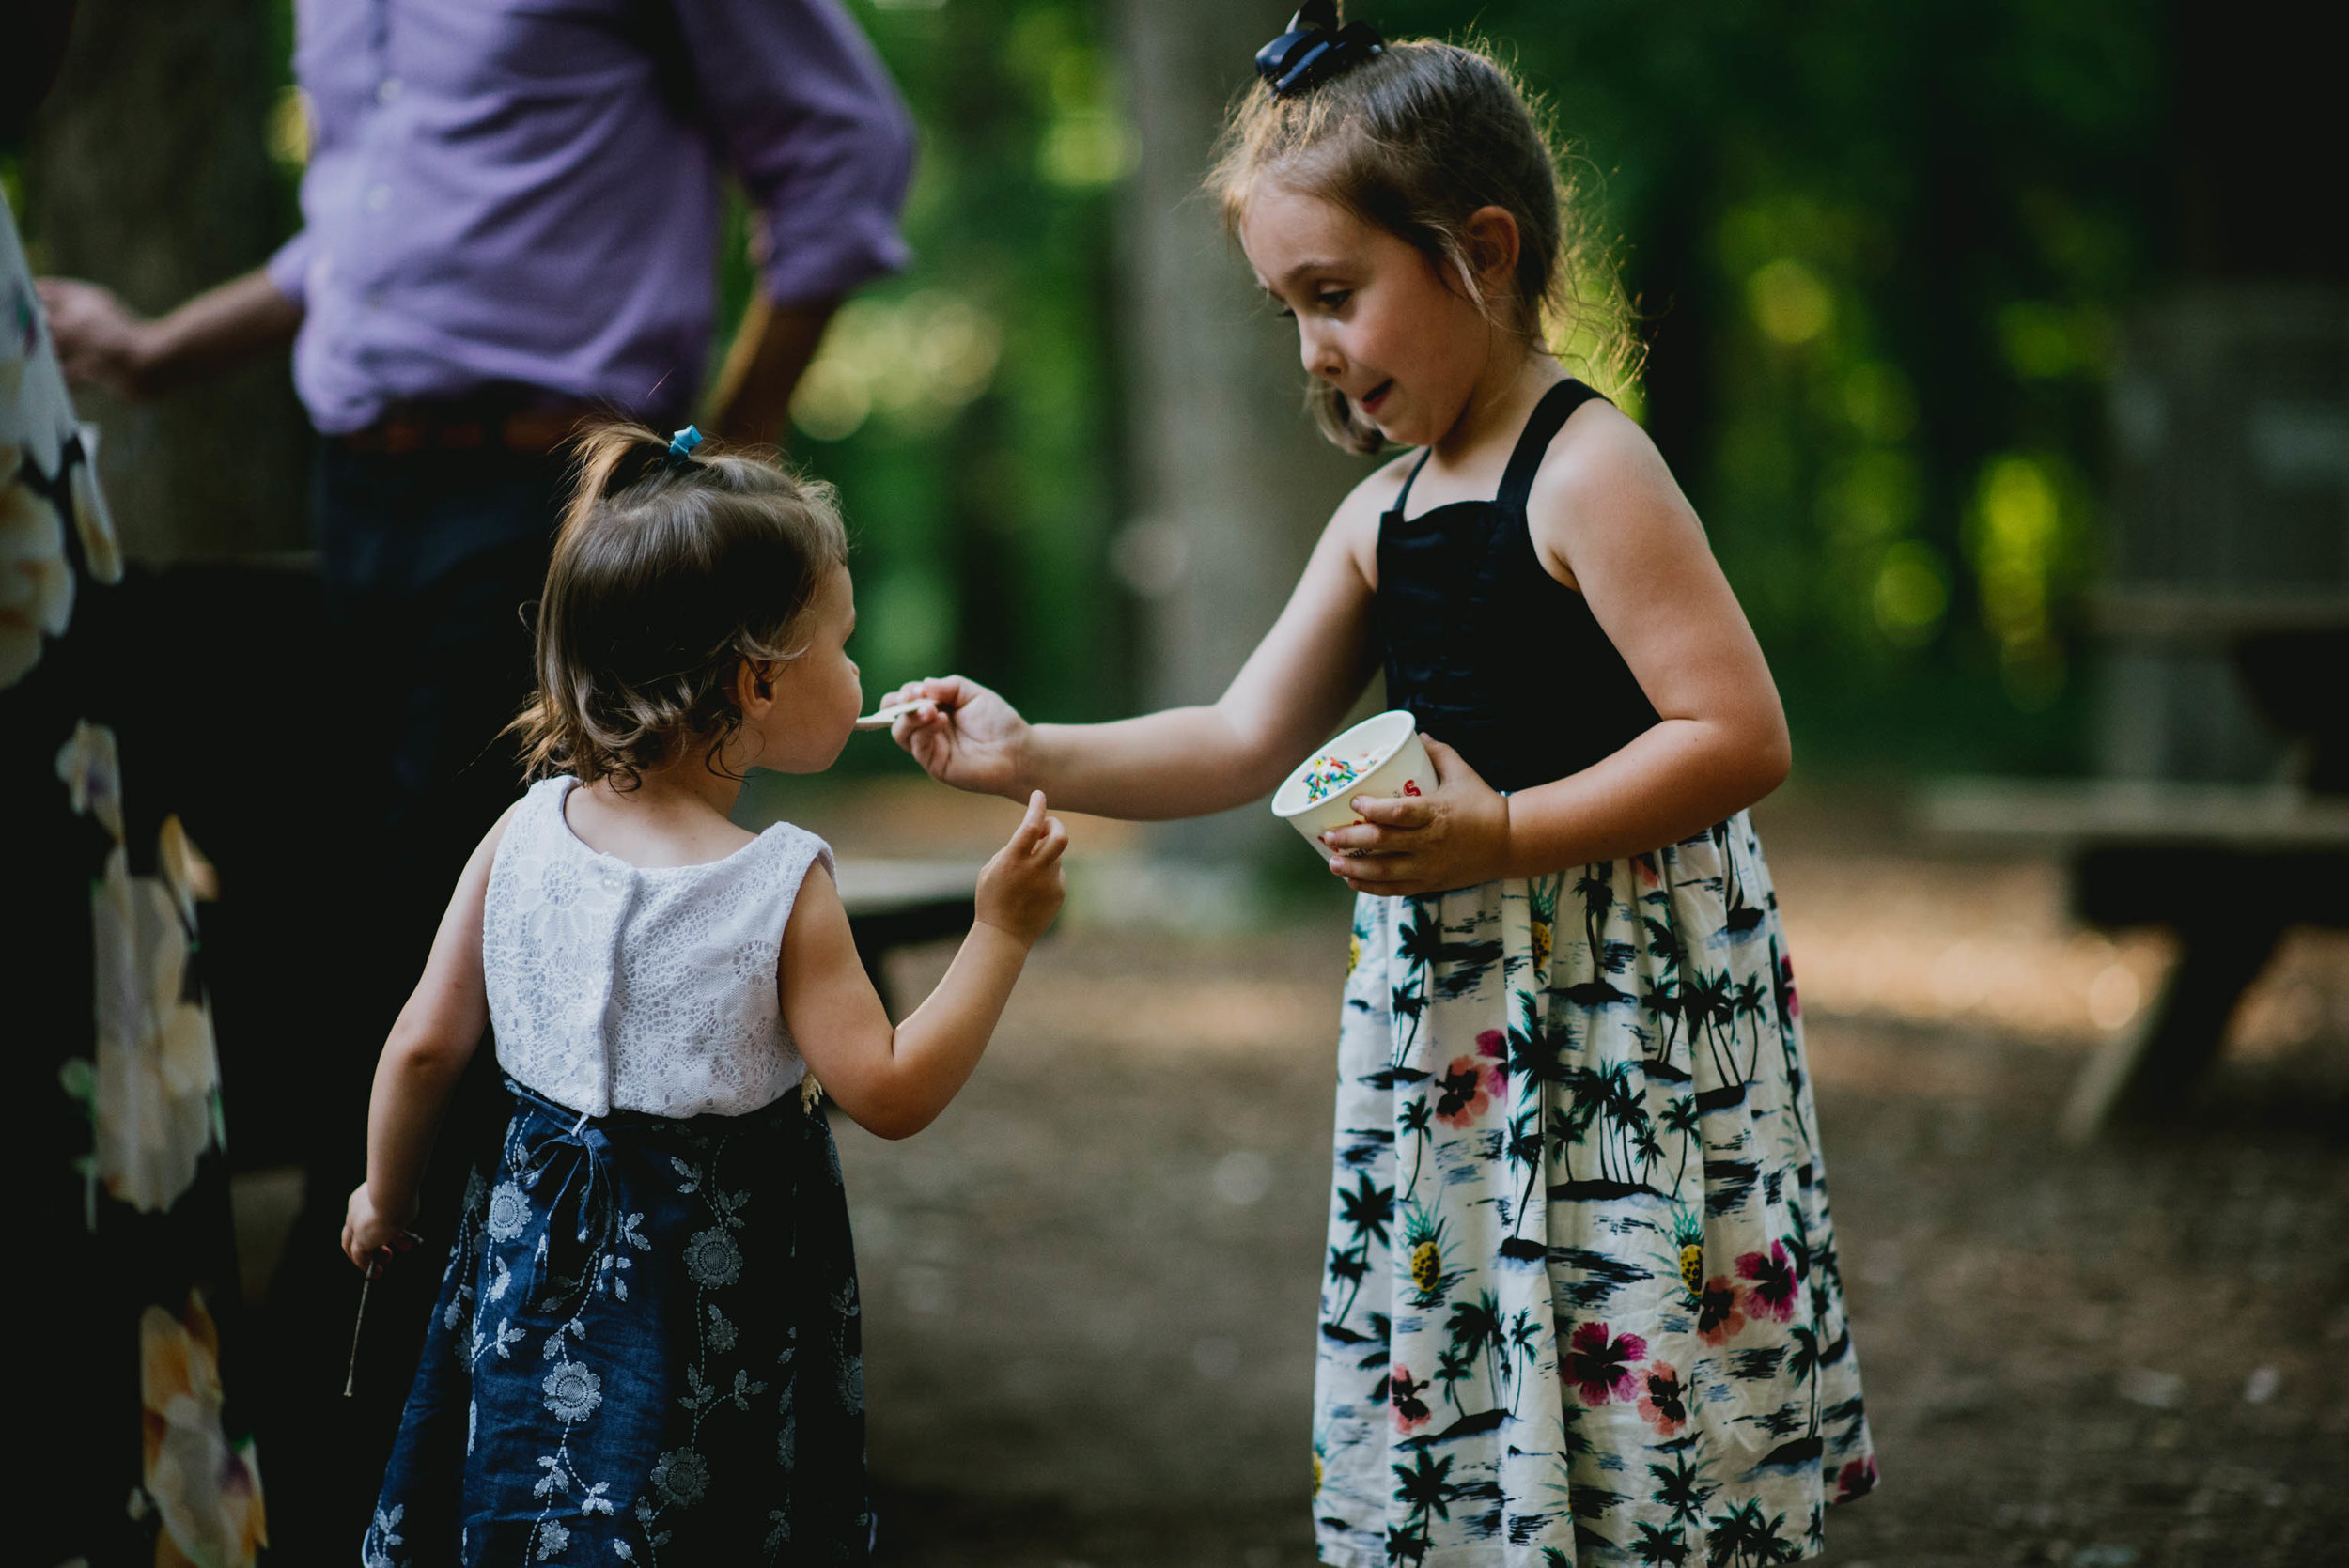 sister feeding younger sister ice cream during wedding reception